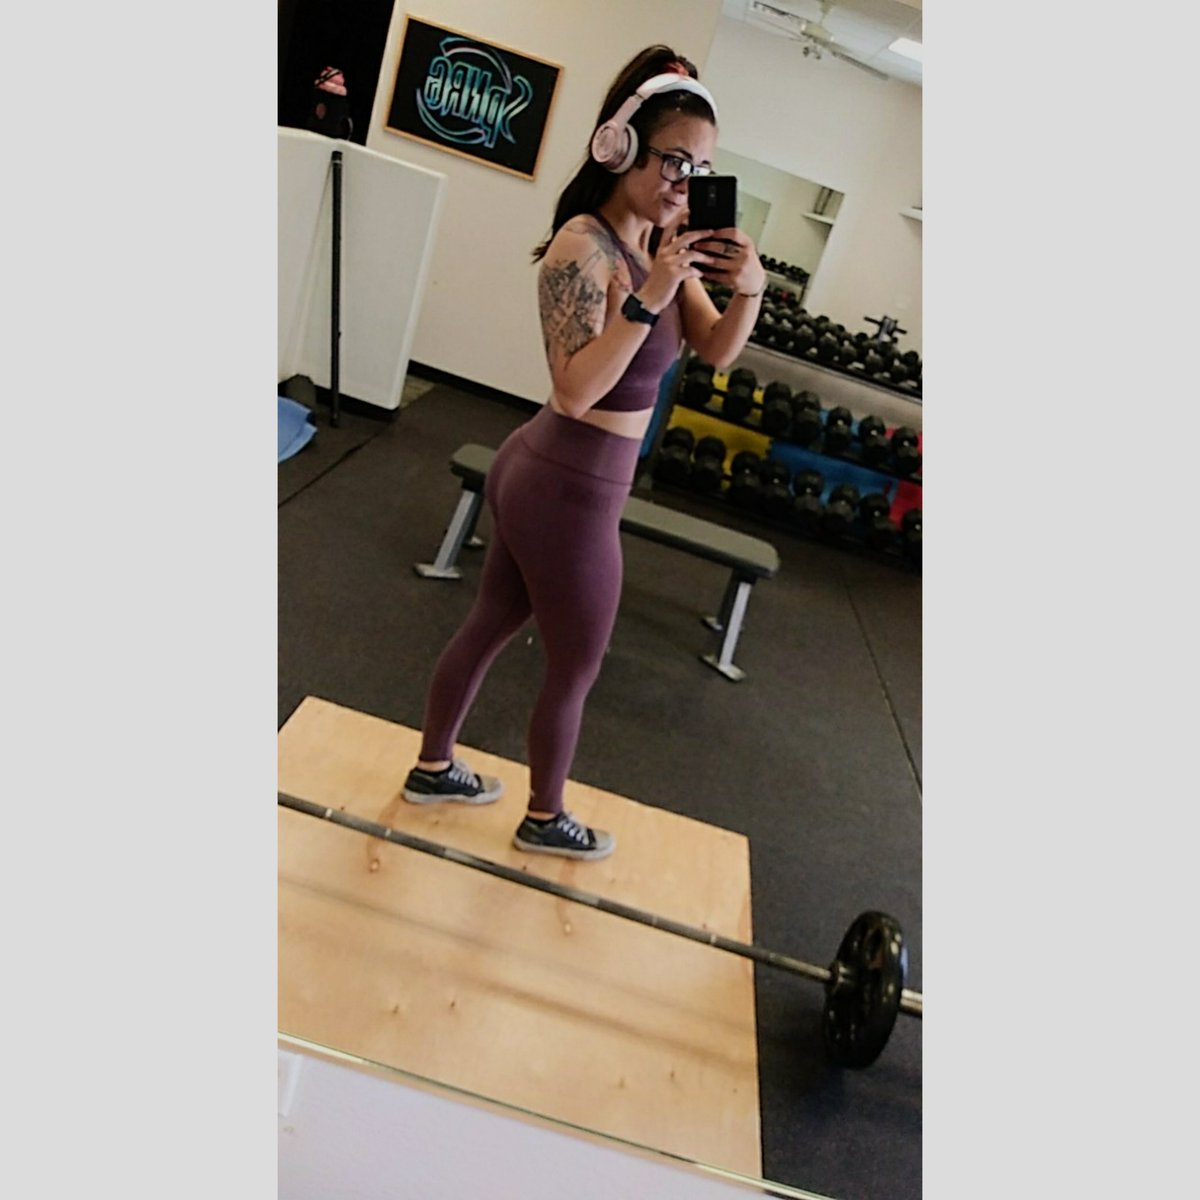 Happy #humpday! Killed my workout thanks to dry scooping some pre bc ya girl was tired lol.  #fitchick #fitness #gymshark #girlswholift #girlswithtattoos #inkedgirlspic.twitter.com/CkZitEhx3O